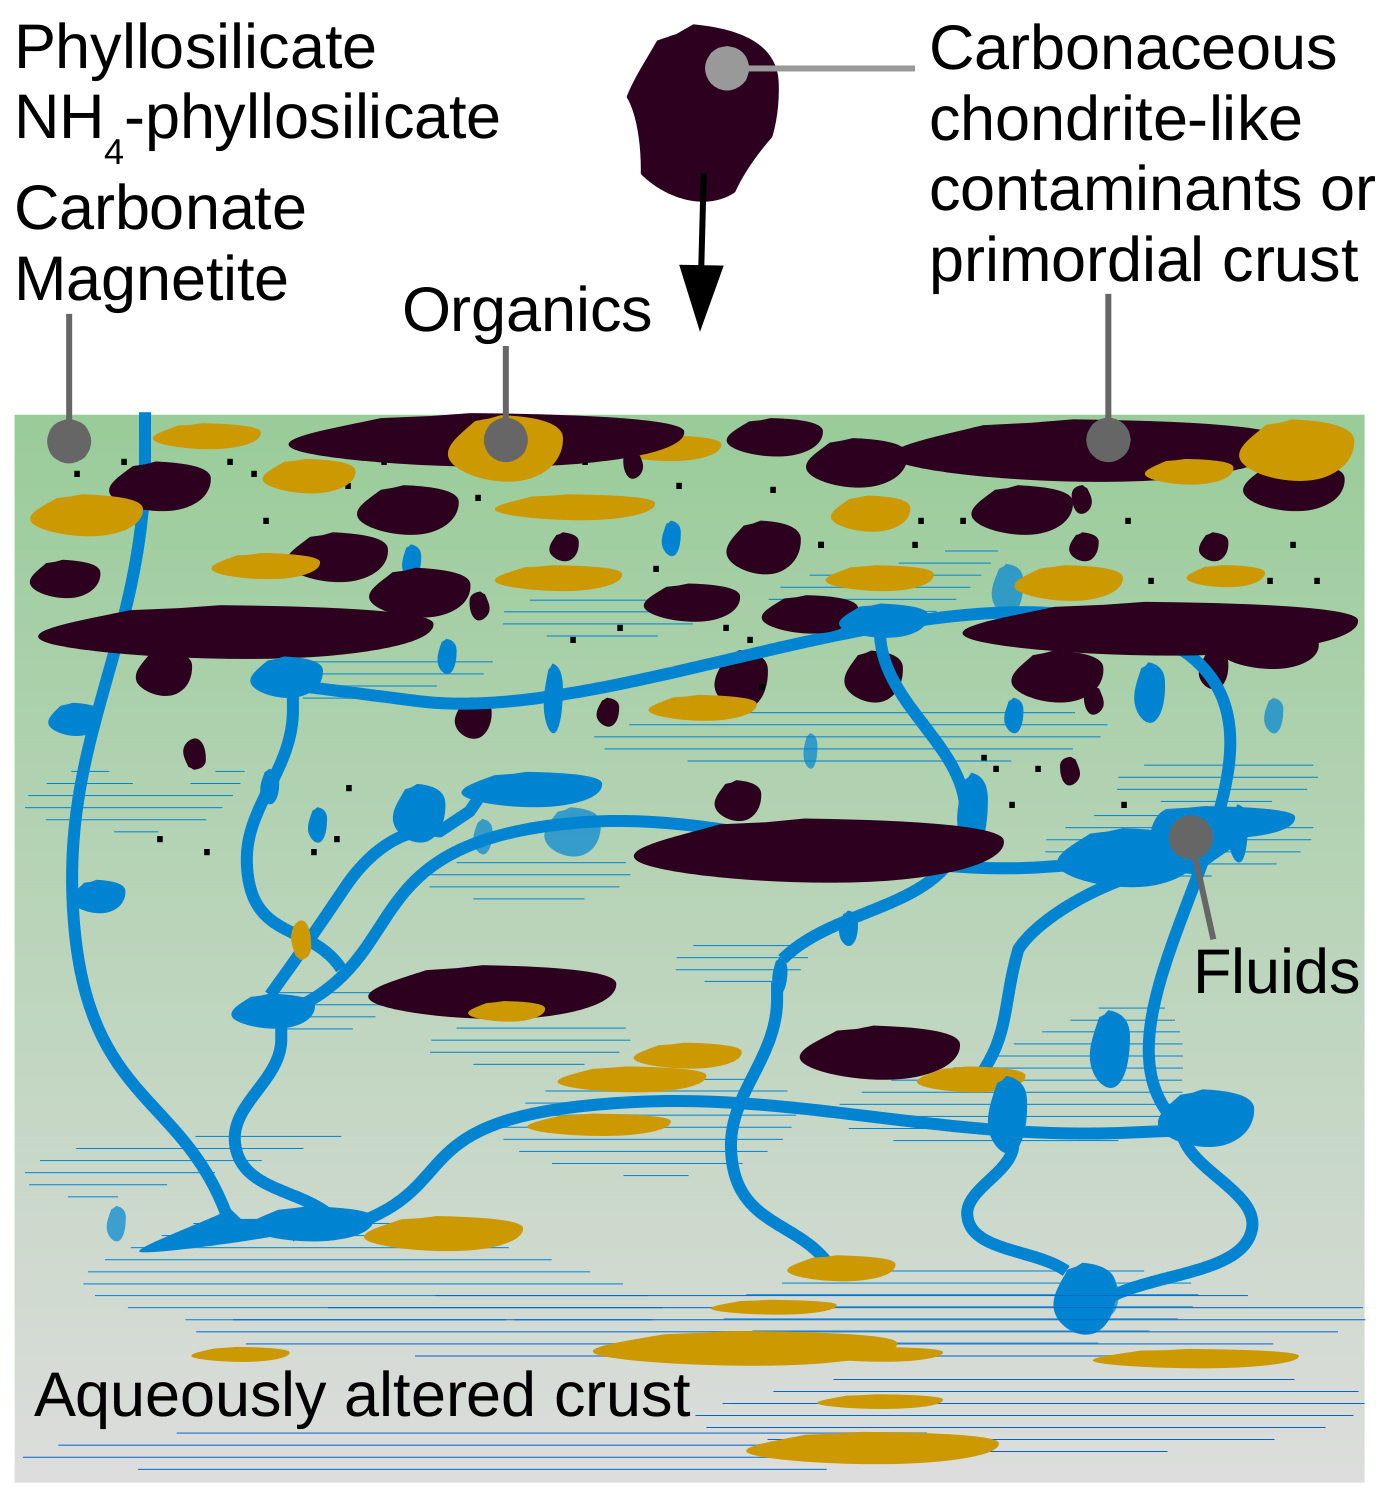 SwRI scientists constructed a possible schematic path for the evolution of Ceres' upper crust. The figure shows the presence of carbonaceous chondrite-like materials (black) mixed with products of aqueous alteration such as phyllosilicates, carbonates and magnetite, shown in green, and organics, shown in orange. Shaded blue regions indicate water, and blue lines represent conduits for water migration. Organics may have formed in place during aqueous alteration or could have been concentrated by fluids ascending to the upper crust, resulting in the inferred higher-than-chondritic carbon concentration on Ceres' surface. Over time, the surface gets homogenized by mixing due to collisions and other processes. Image Credit: NASA/JPL-Caltech/UCLA/MPS/DLR/IDA